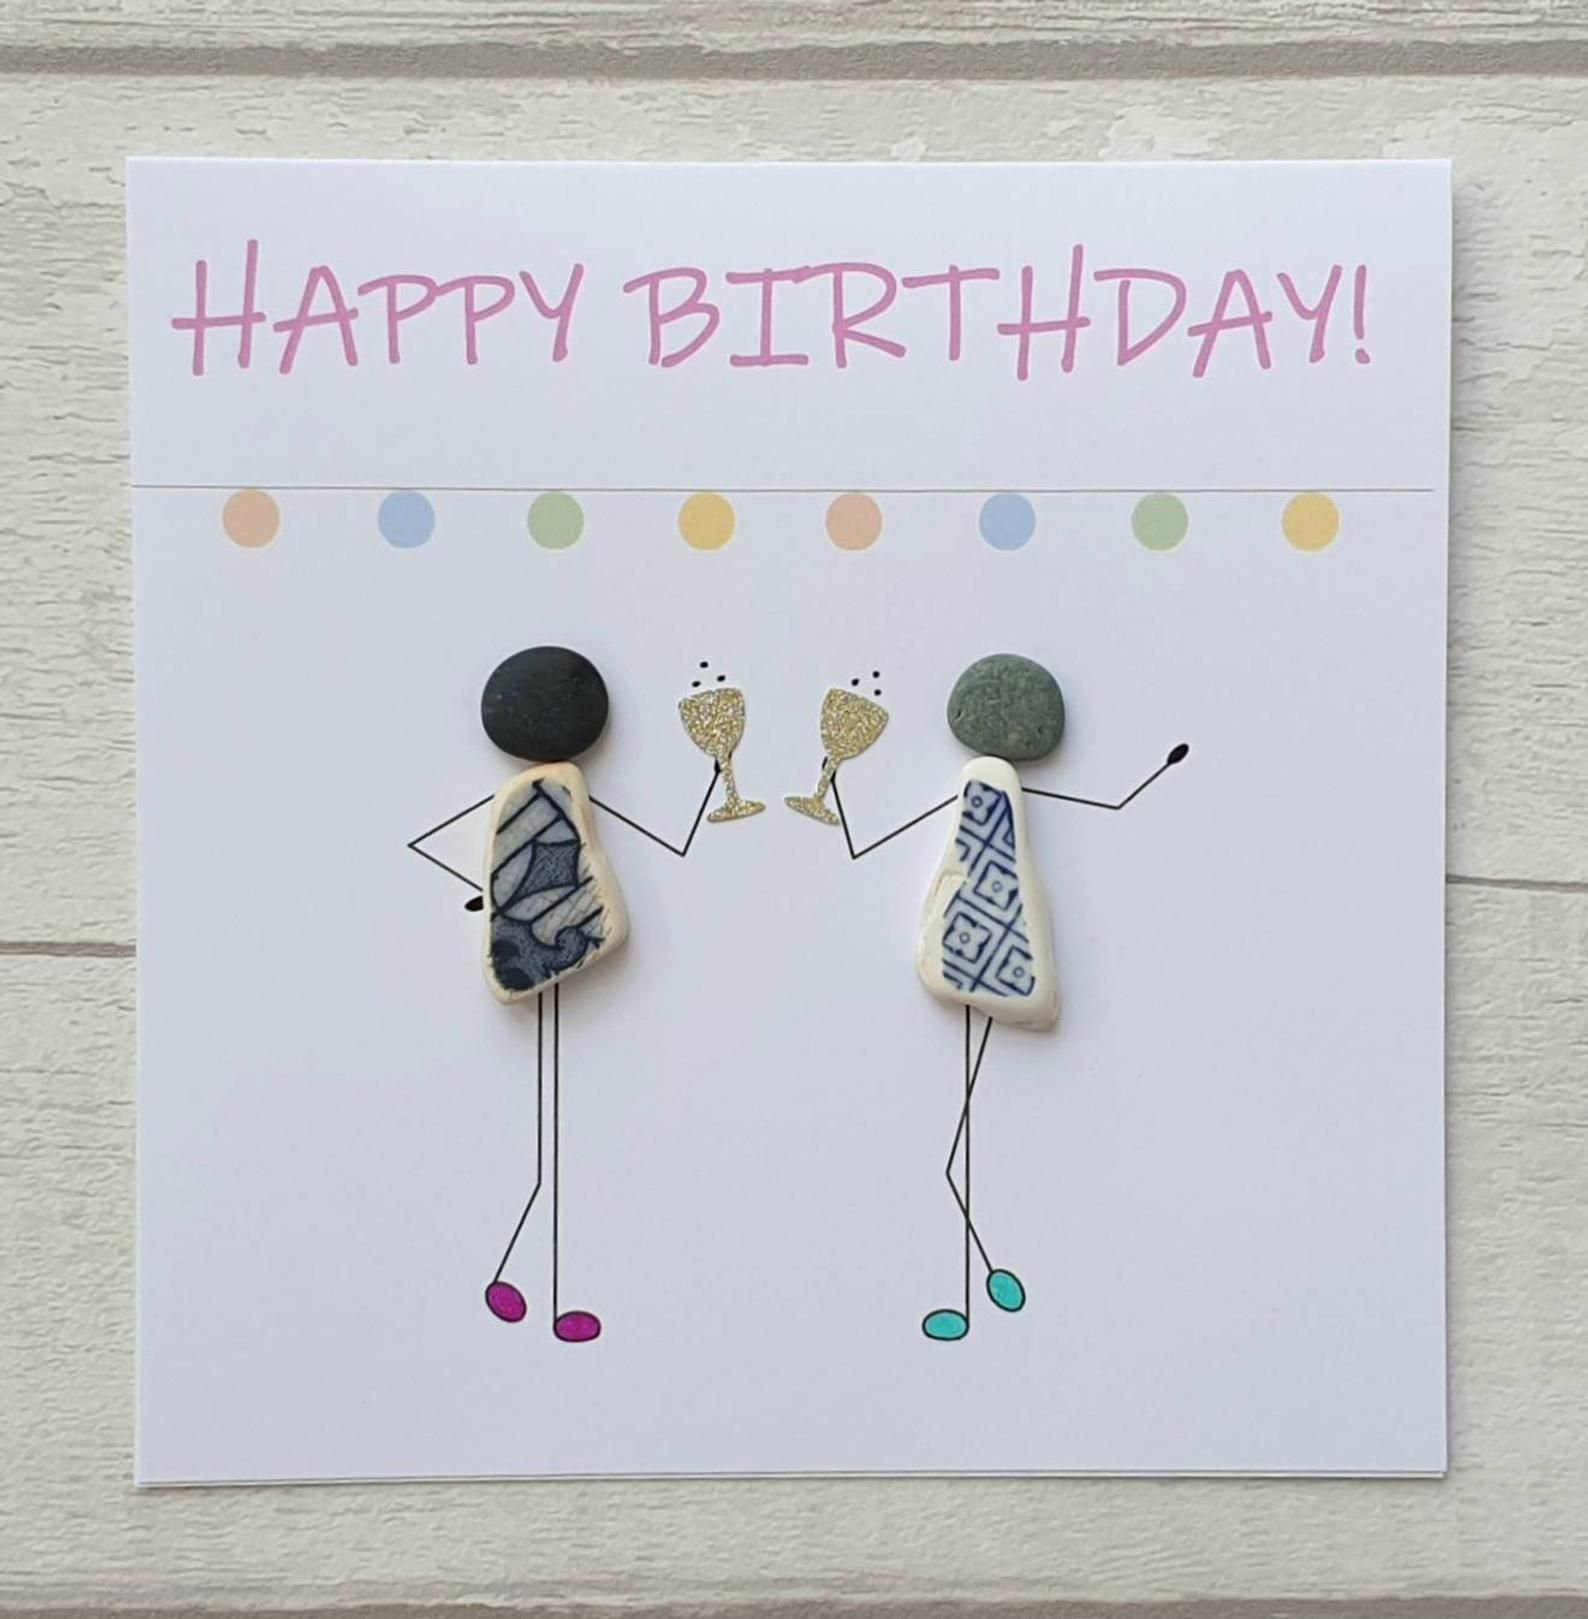 Happy Birthday Card For Best Friend Unique Funny Handmade Etsy Happy Birthday Card Funny Birthday Cards Birthday Cards For Her